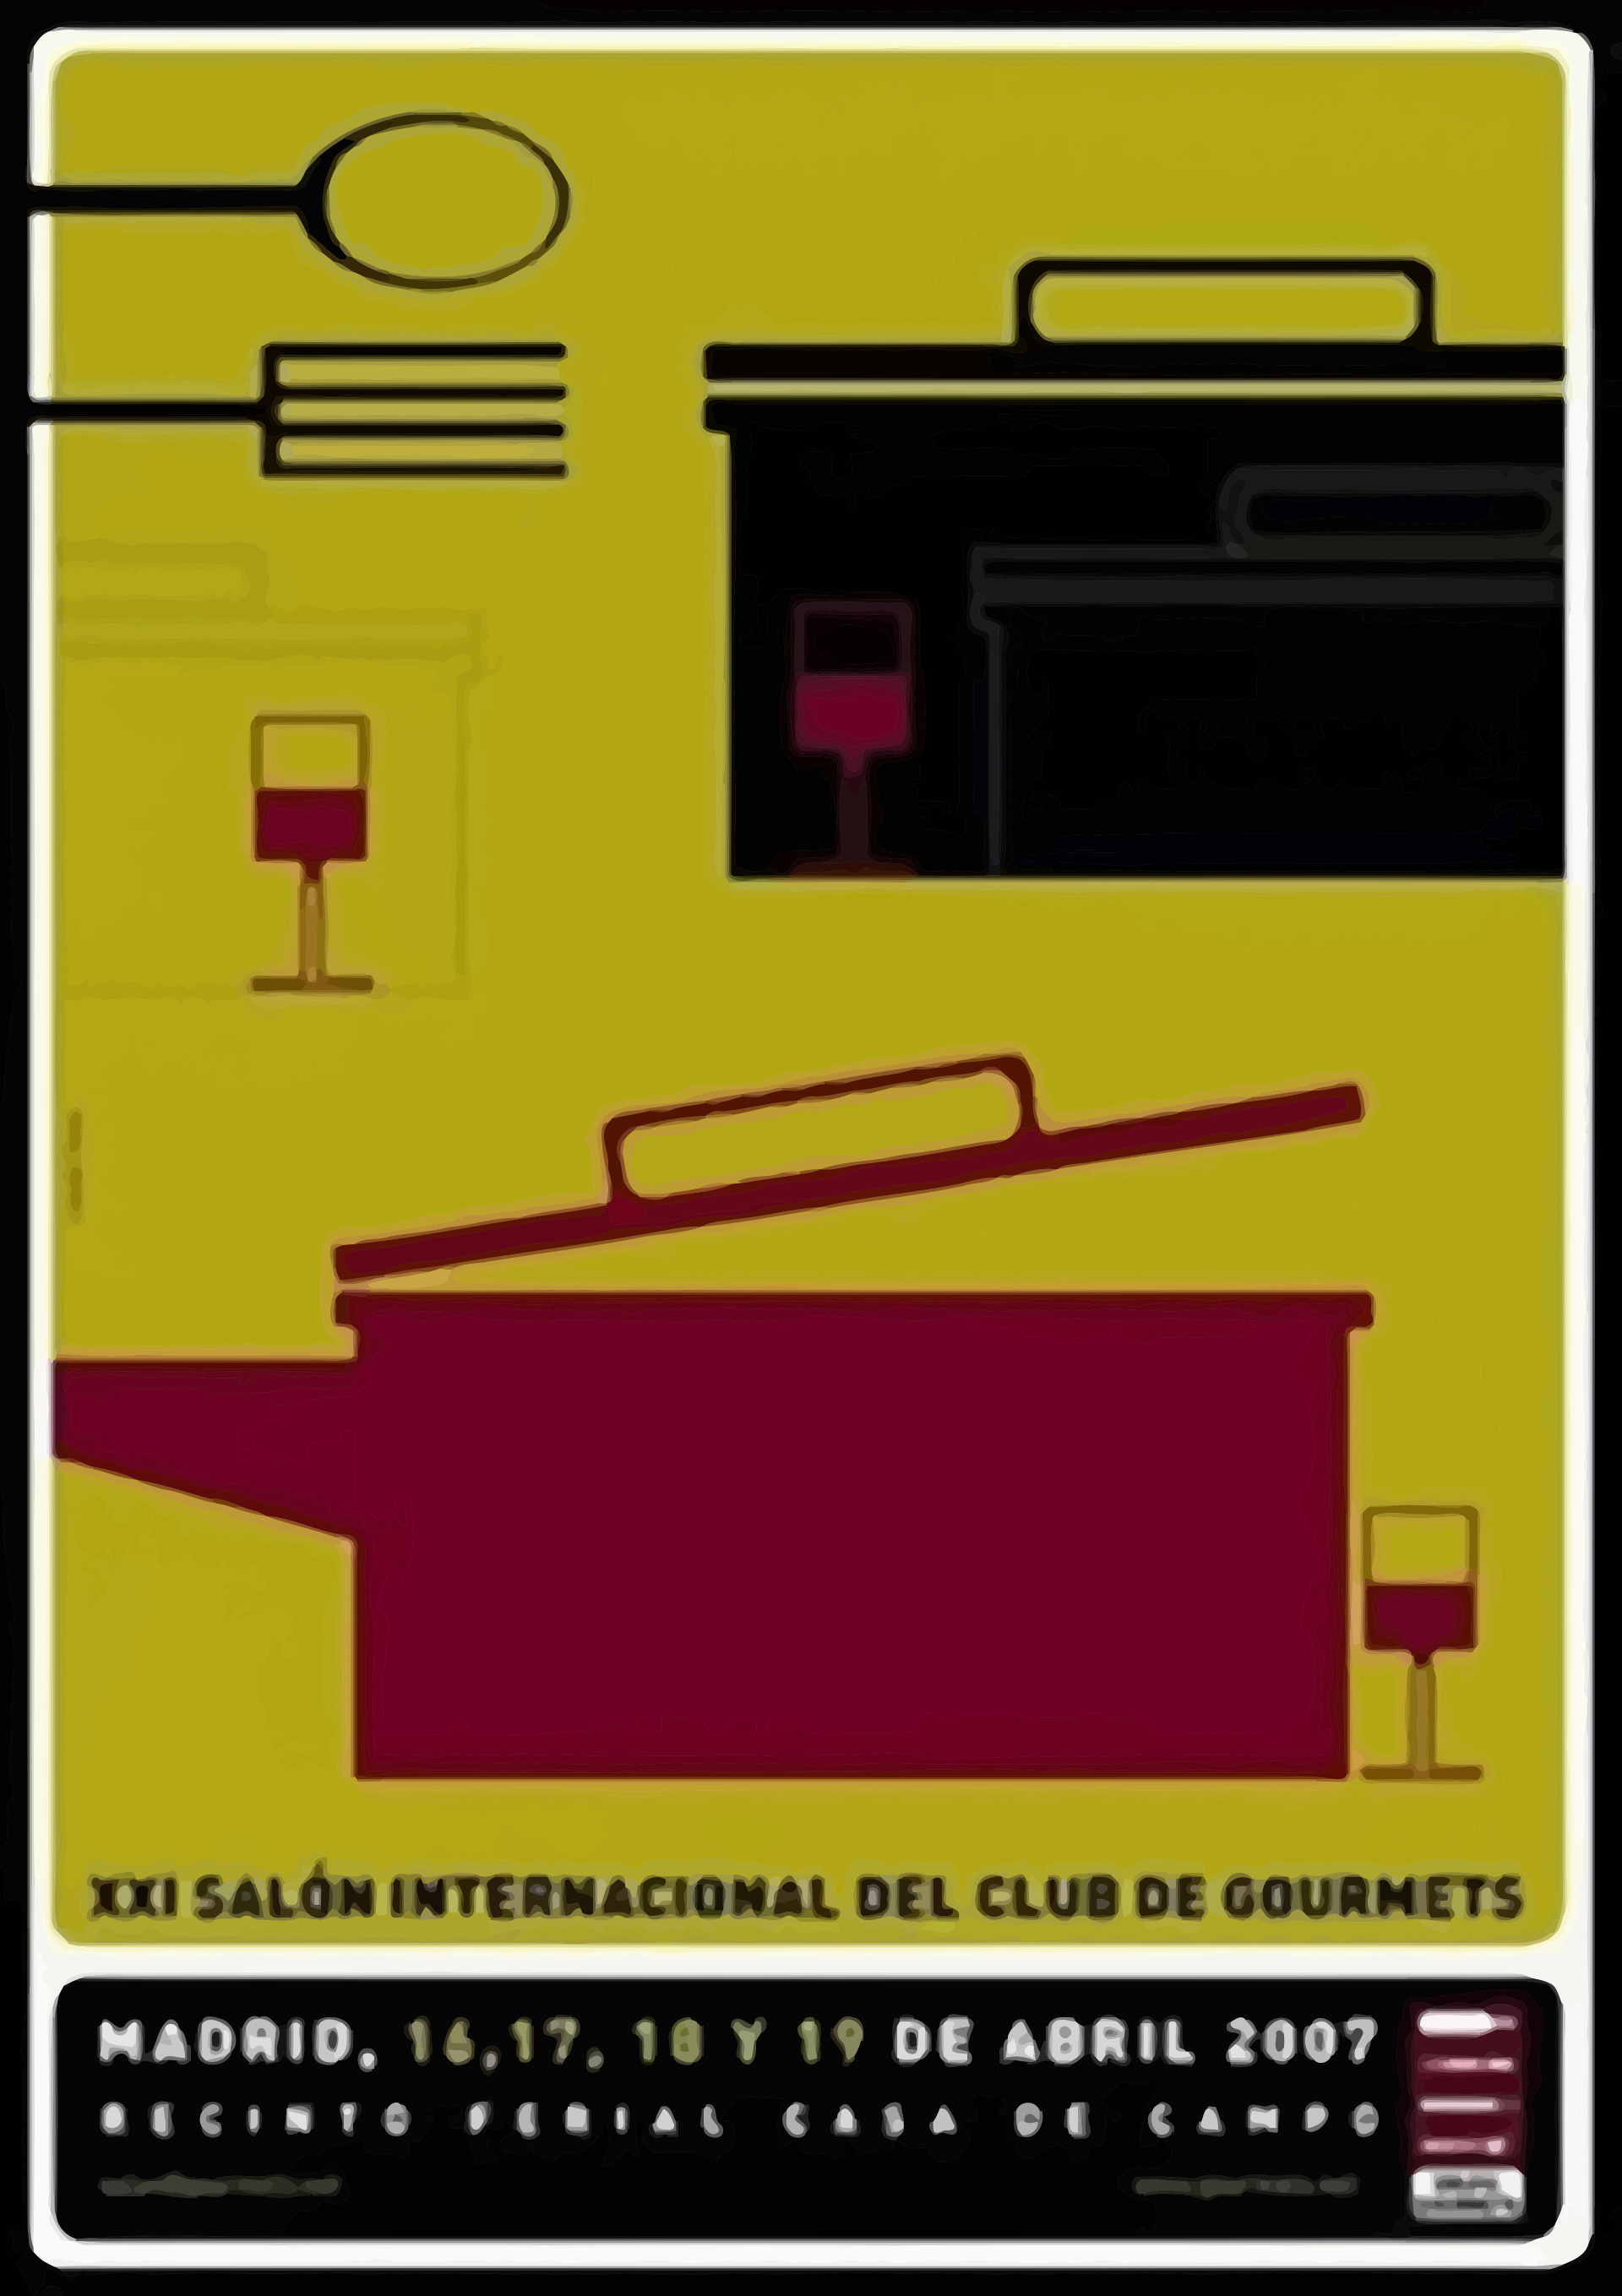 Salon Internacional del Club Gourmets